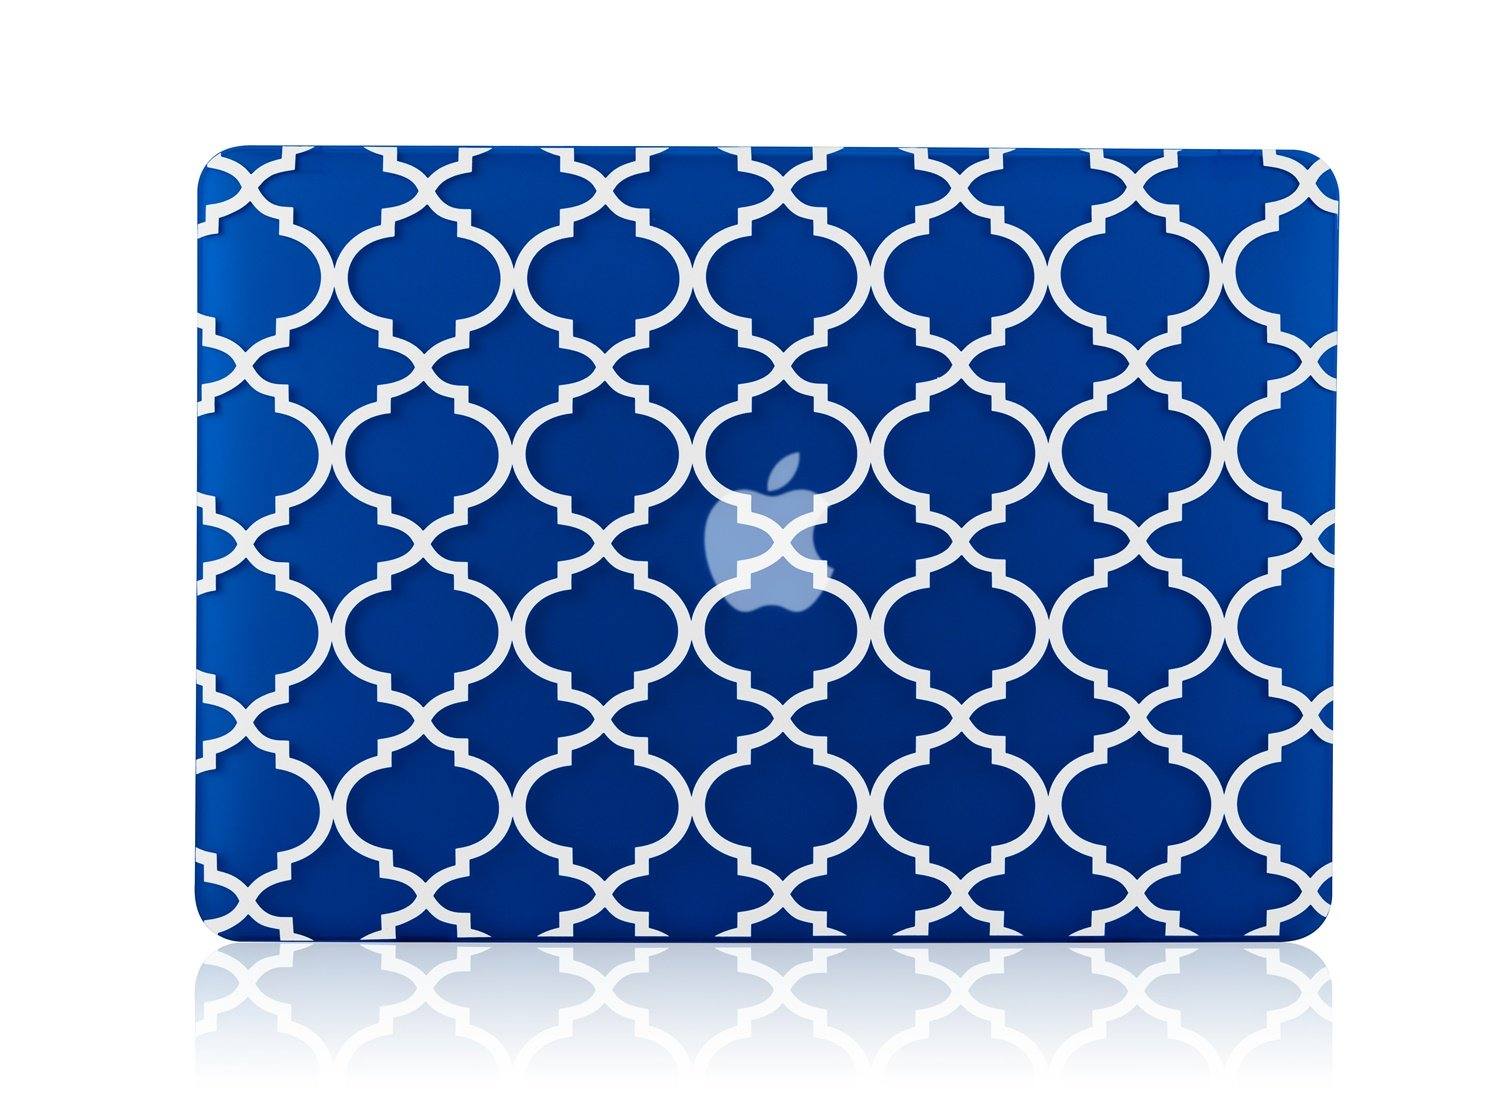 TopCase Quatrefoil/Moroccan Trellis Royal Blue Ultra Slim Light Weight Rubberized Hard Case Cover for Apple MacBook Pro 13.3'' with Retina Display Model: A1425 and A1502 (Newest Version 2013)